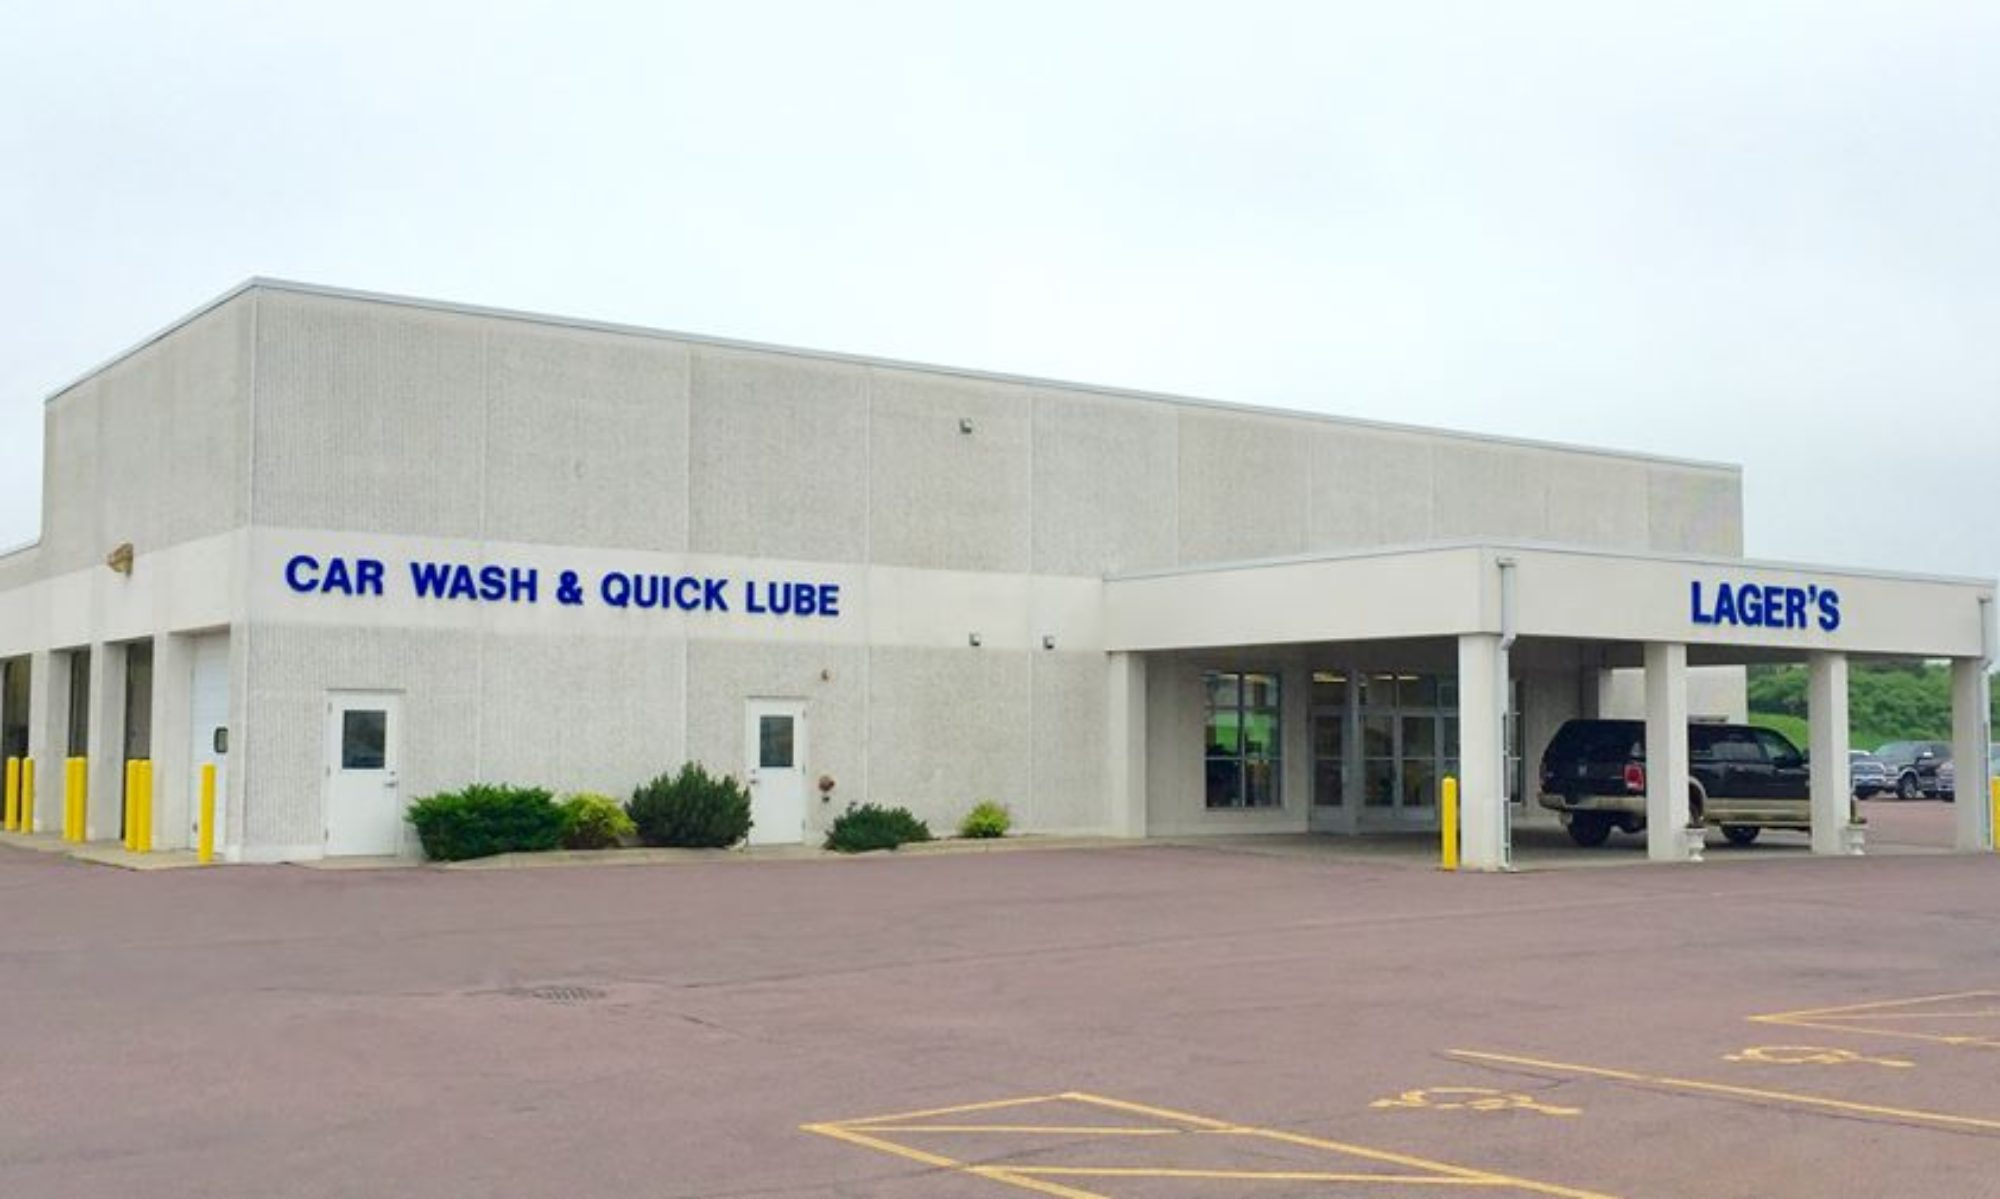 Lager's Car Wash & Quick Lube